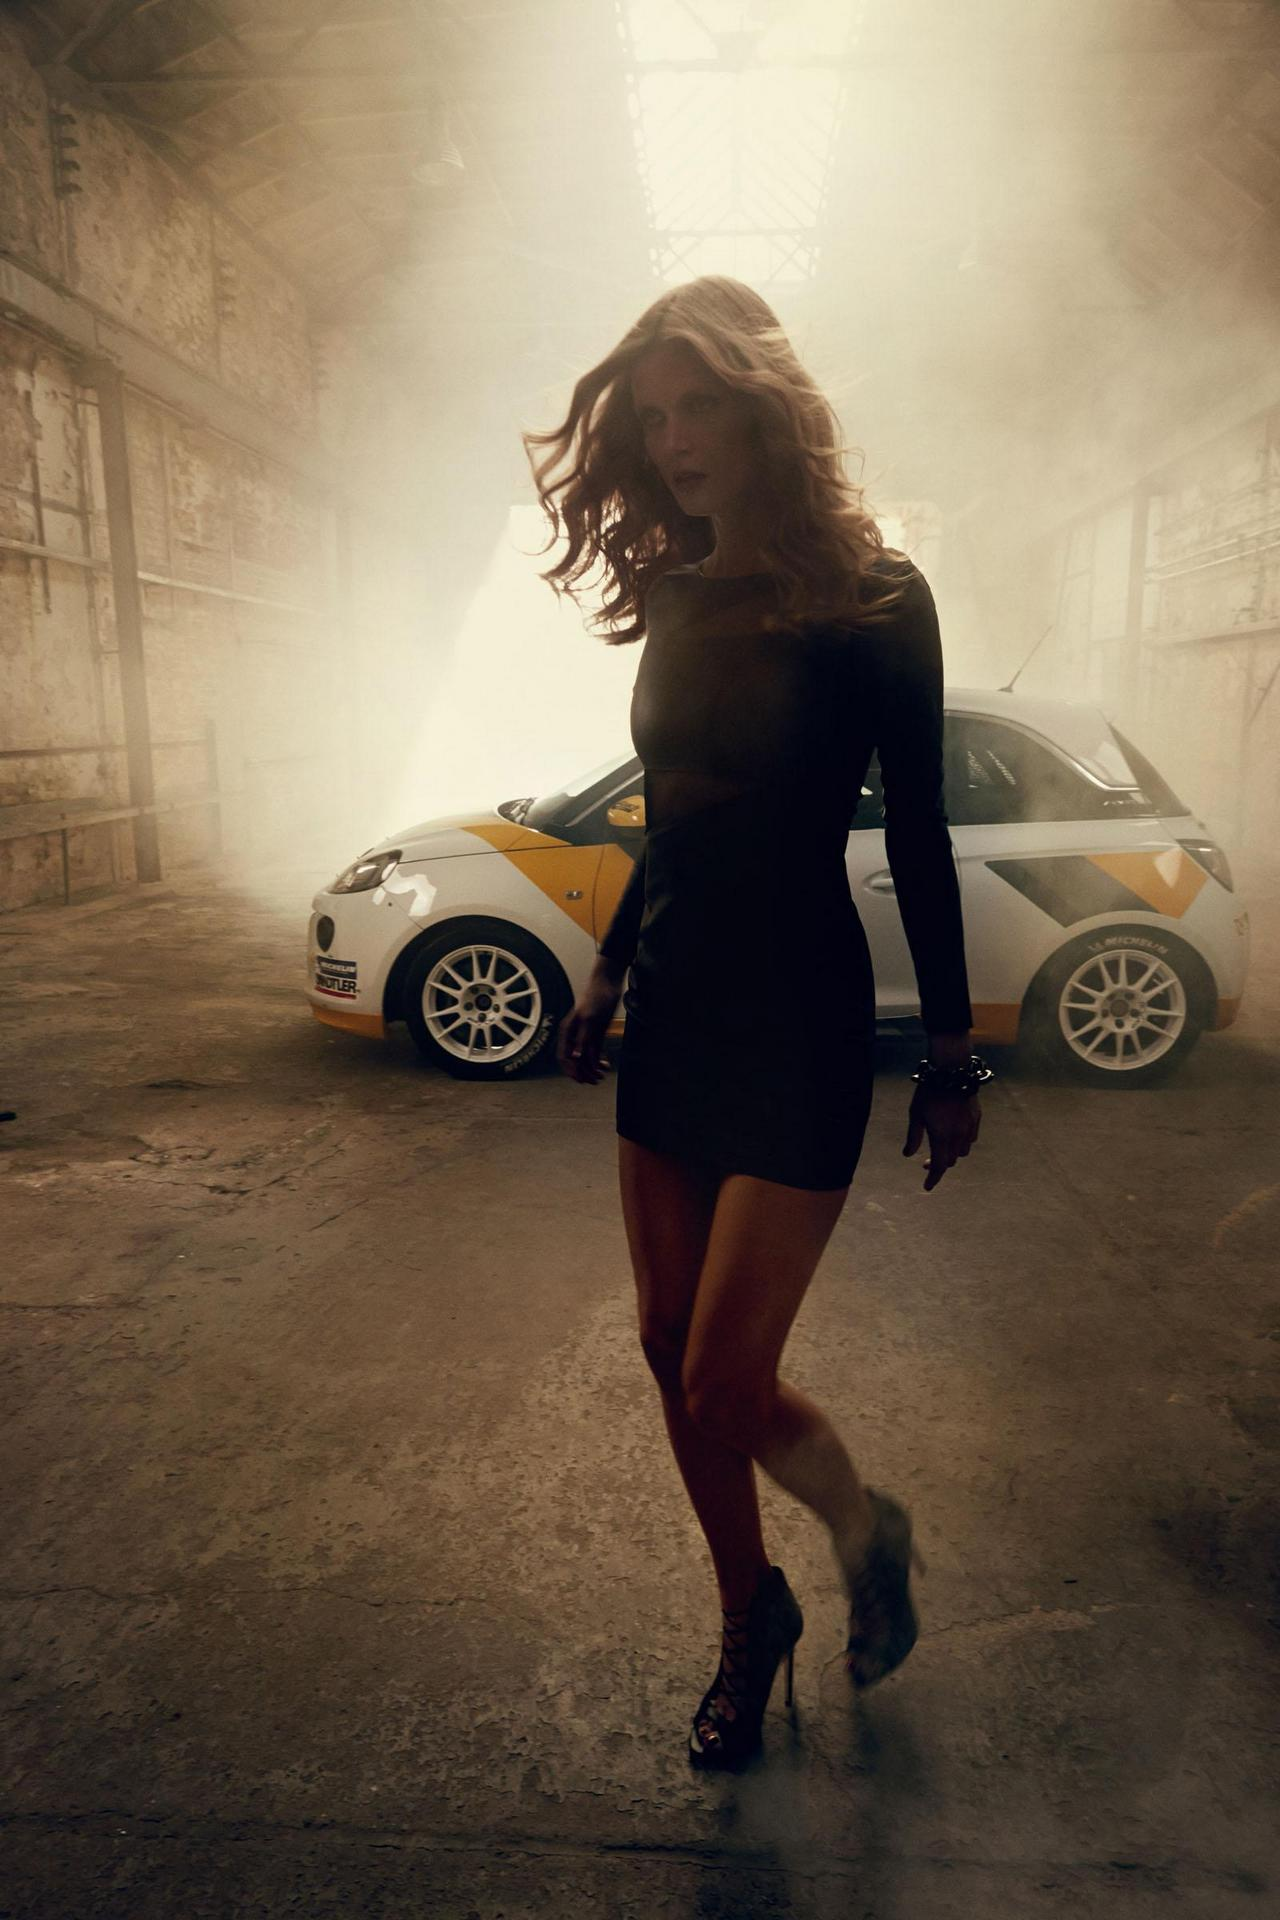 opel-adam-by-bryan-adams-0-100_2